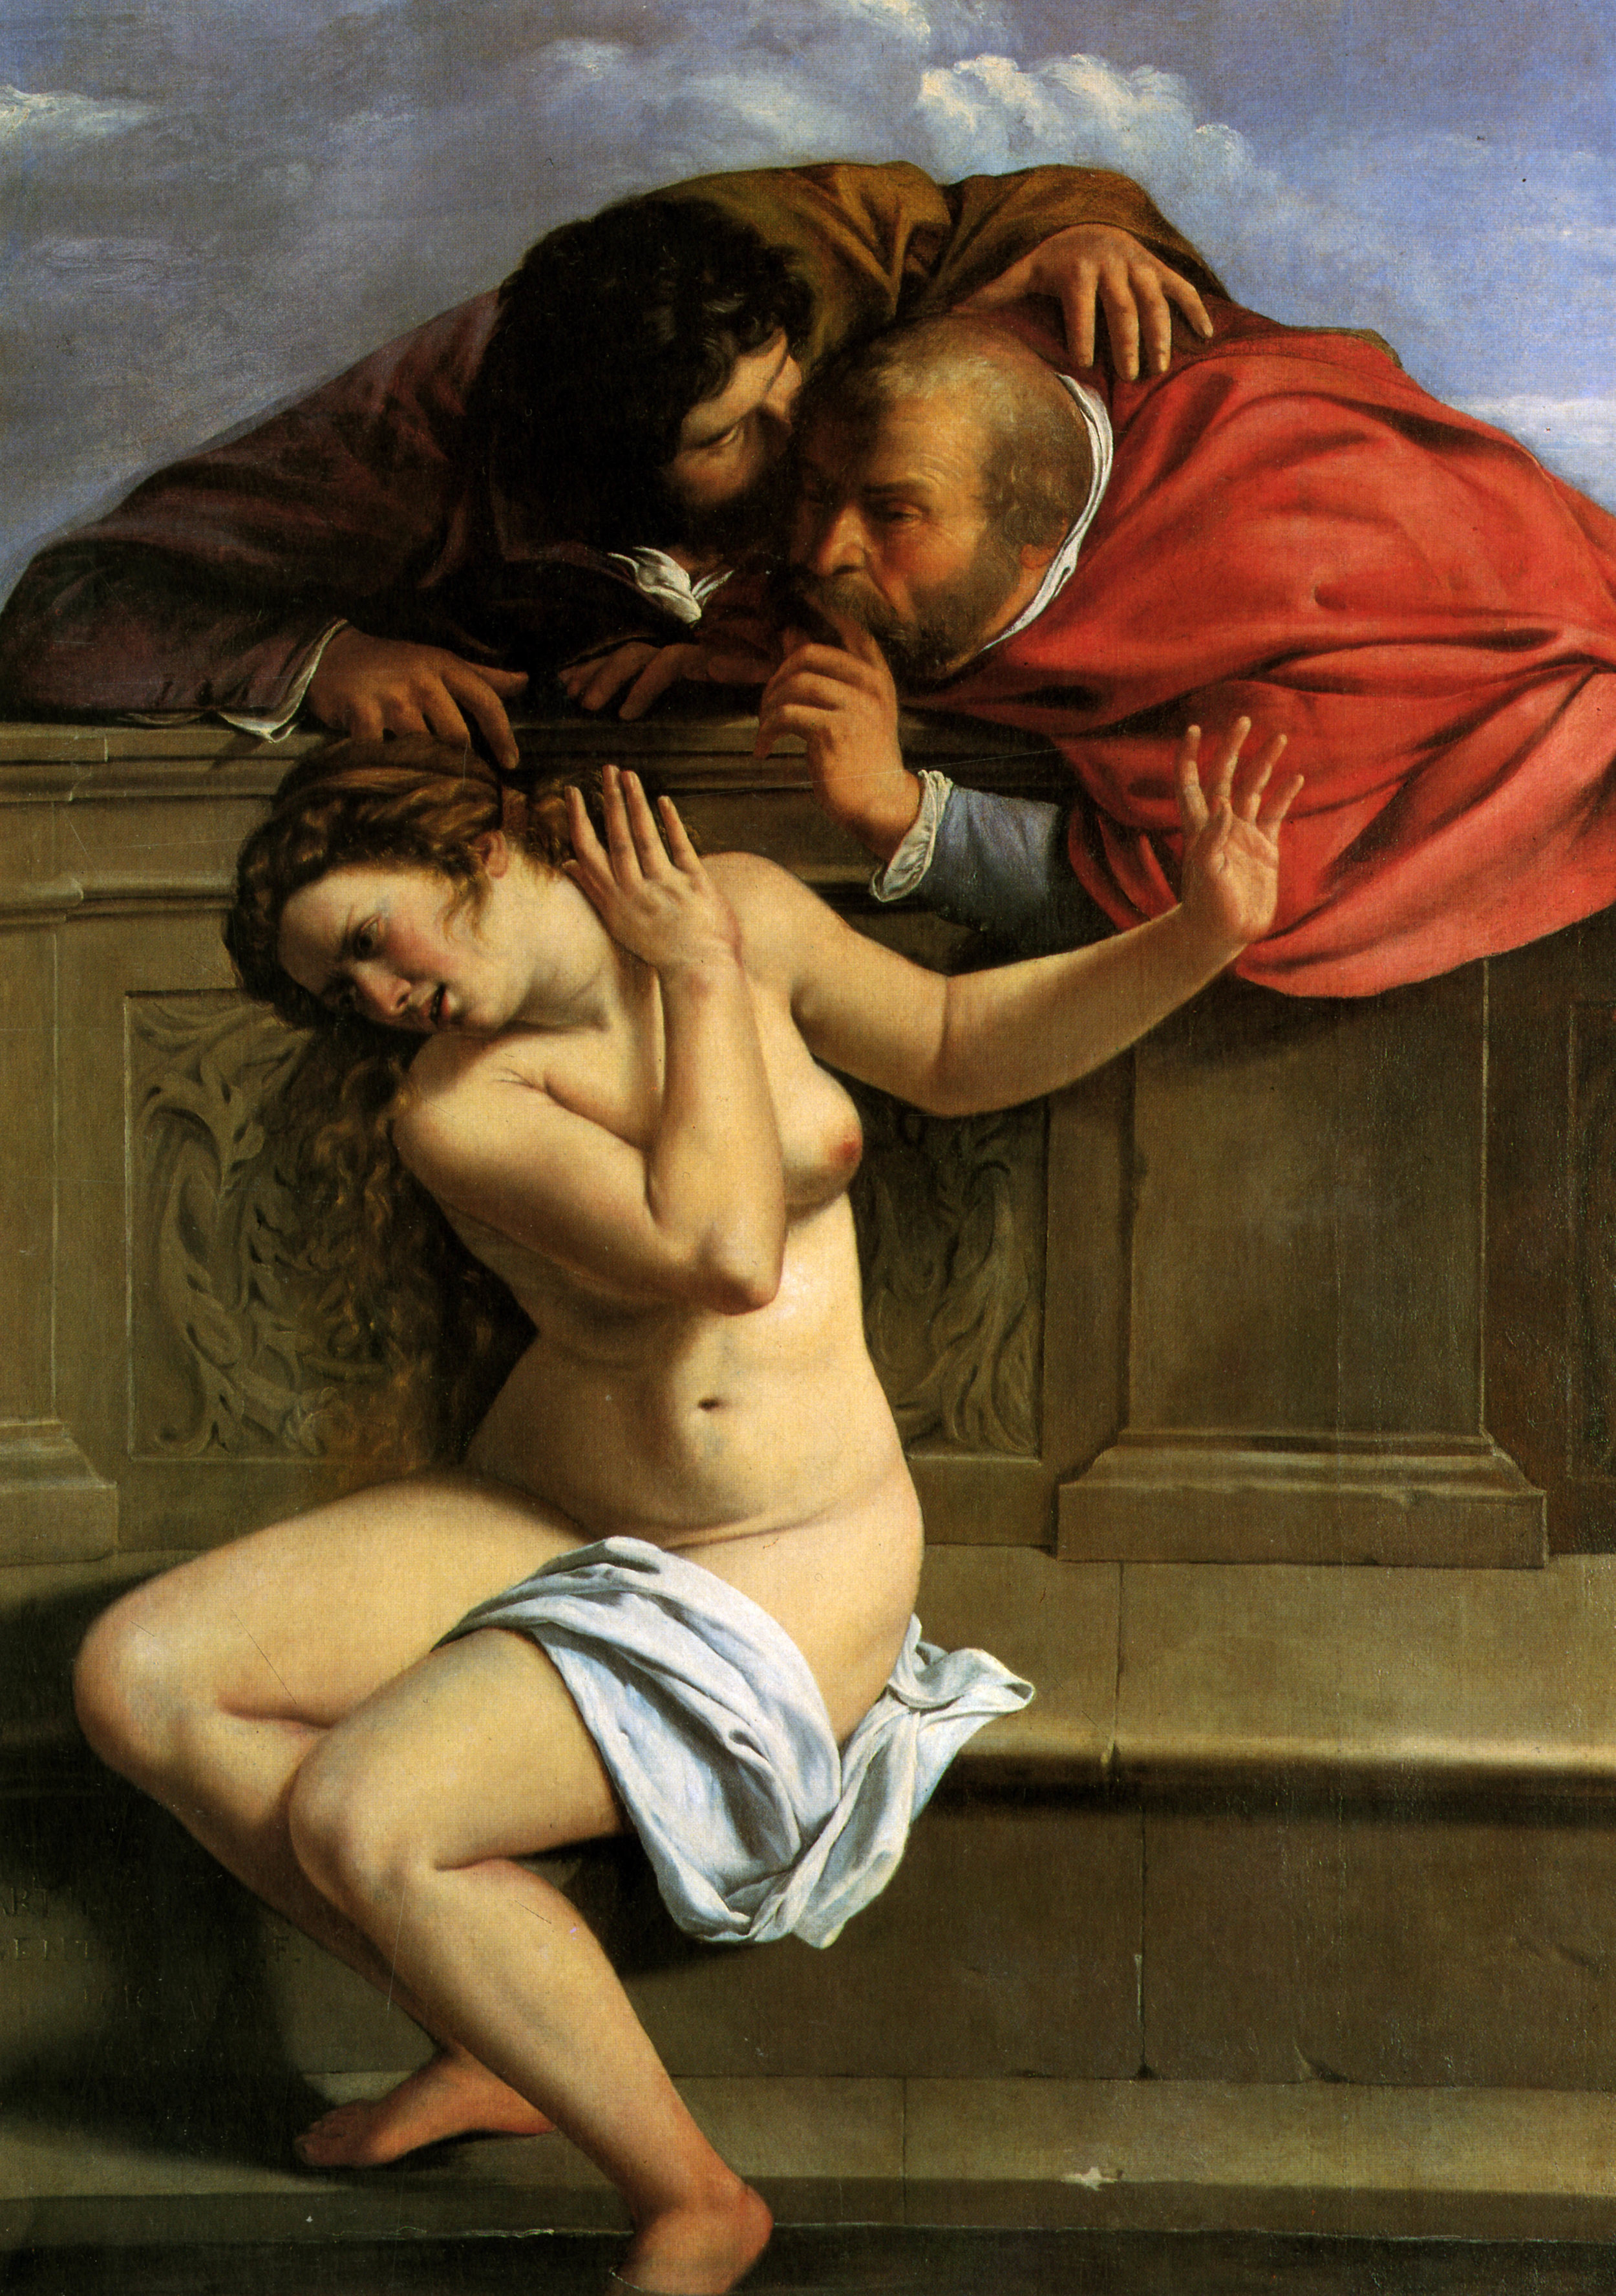 """: """"Susannah and the Elders,"""" a circa 1610 oil on canvas by Artemisia Gentileschi, who was raped and then tortured to ensure she was telling authorities the truth about the crime."""